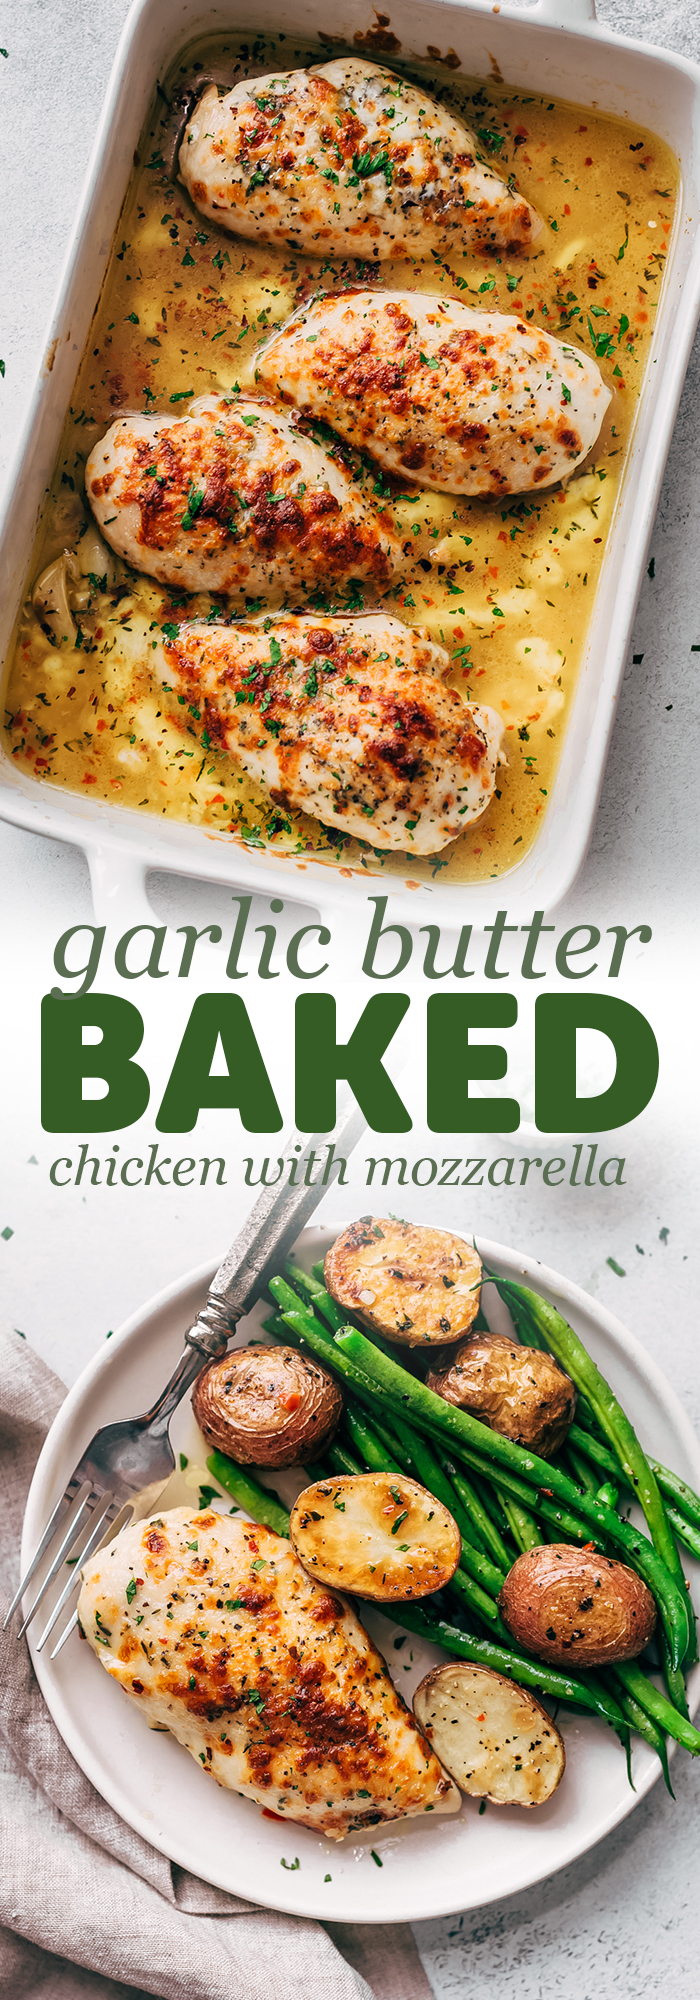 Baked Garlic Butter Chicken with Mozzarella - learn how to bake chicken breasts in a simple garlic butter sauce. Serve with just about anything you like! #garlicbutterchicken #bakedchicken #garlicbutterbakedchicken #chickenrecipes | Littlespicejar.com